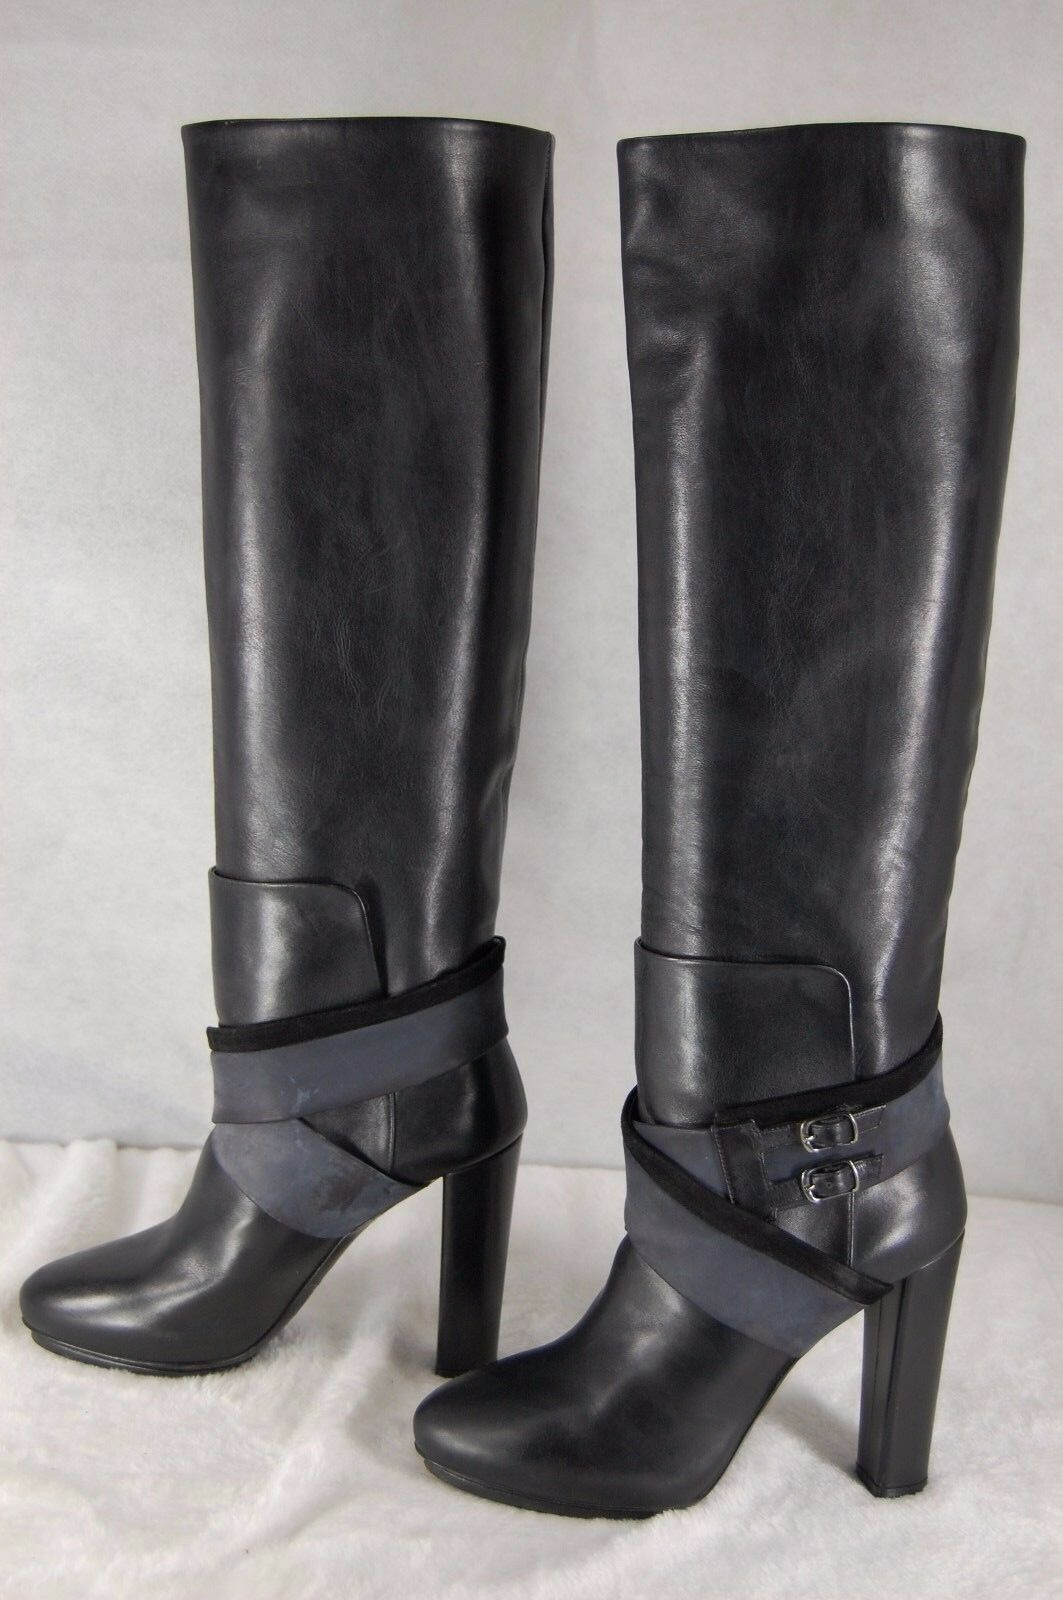 BALENCIAGA  negro LEATHER RIDING BIKER HIGH HEEL  botas EU 35.5 US 5.5